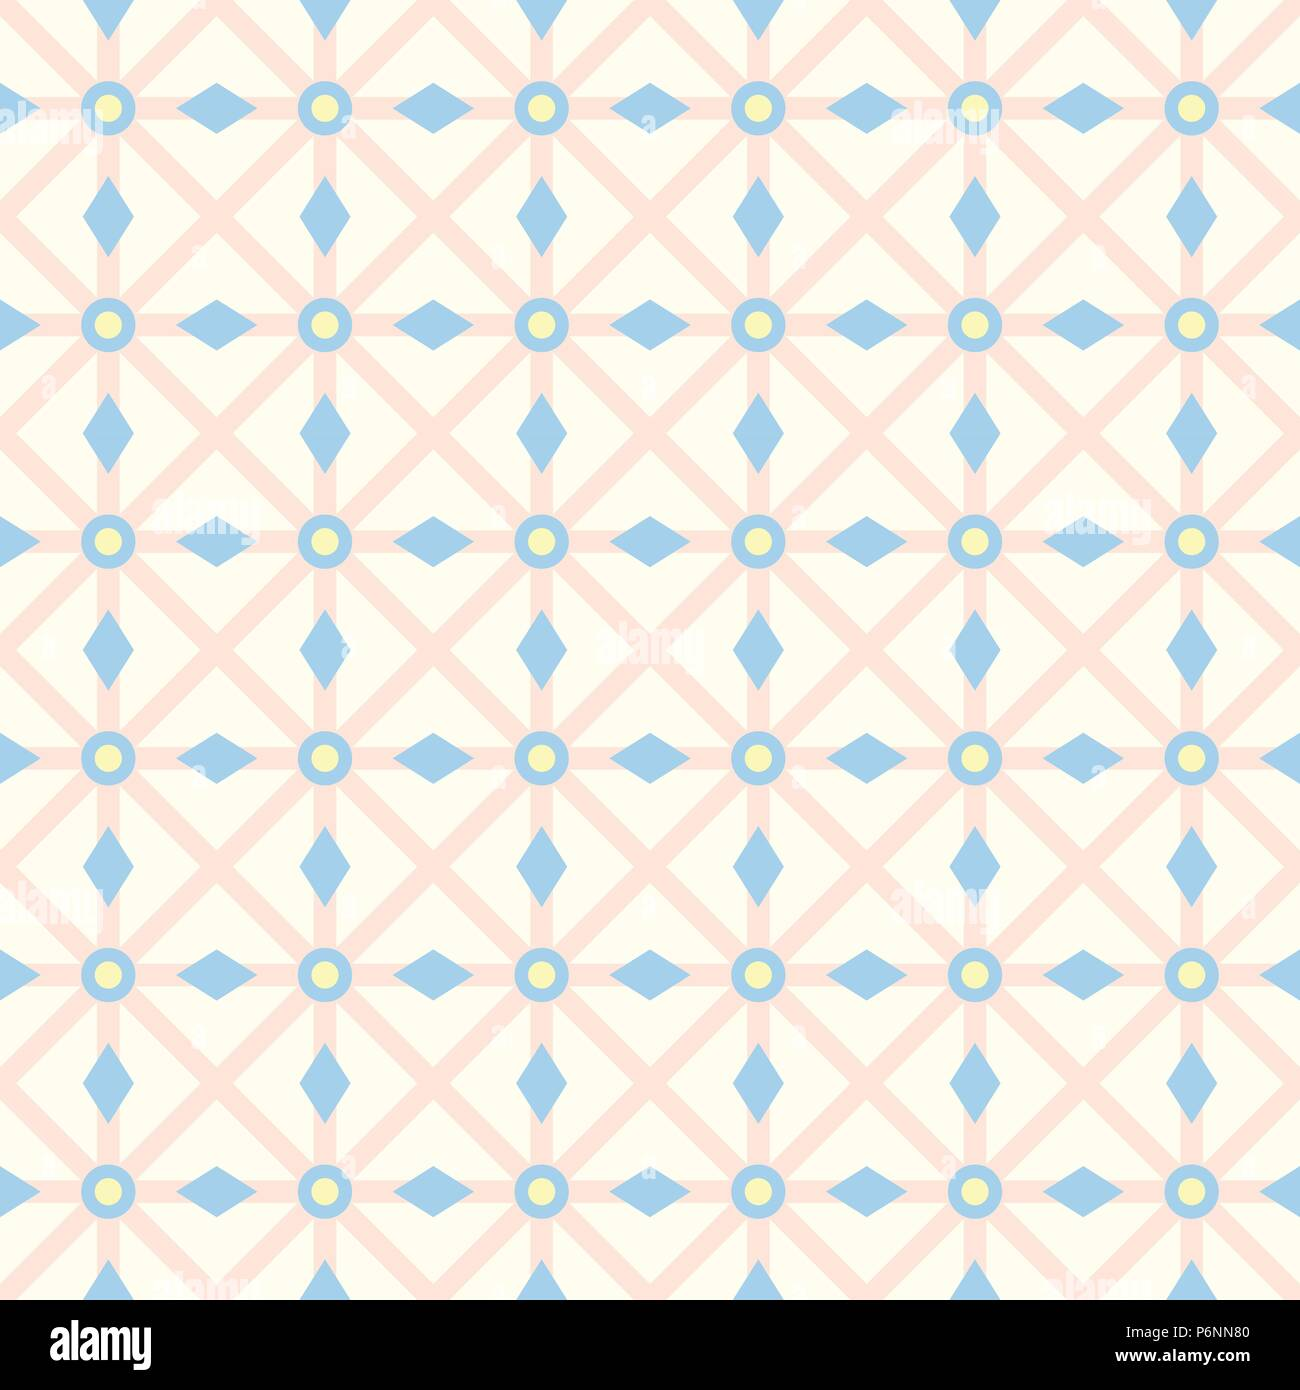 Orange asterisk or crossed line and circle and triangle seamless pattern. Abstract and classic pattern style for design - Stock Vector